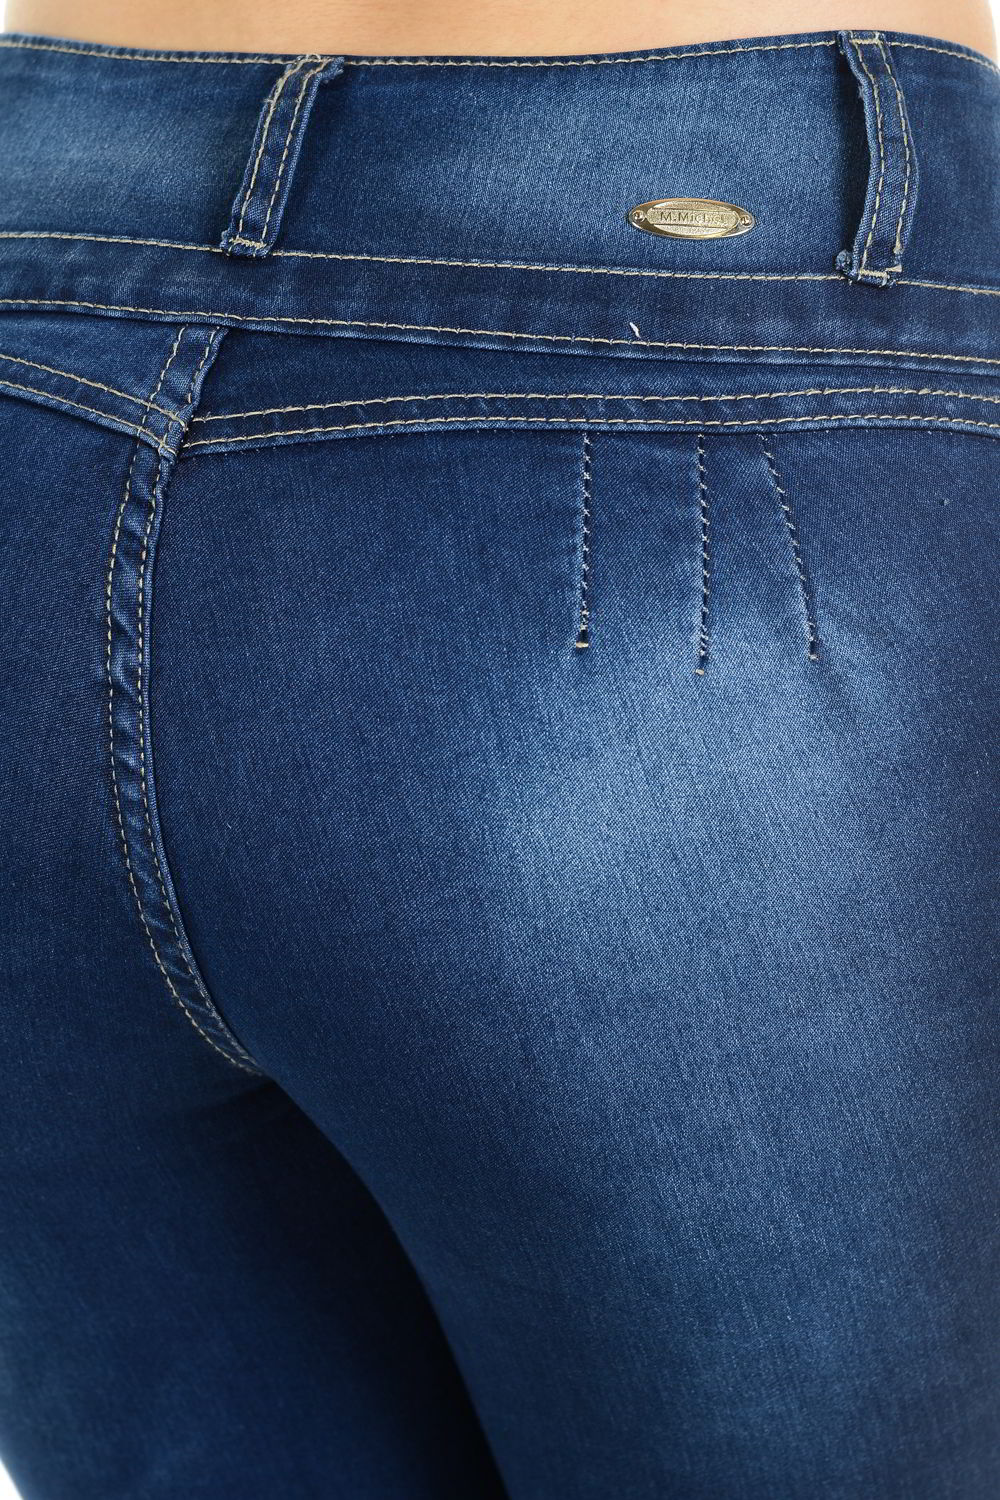 M.Michel Jeans, Levanta Cola, Push-Up - M757